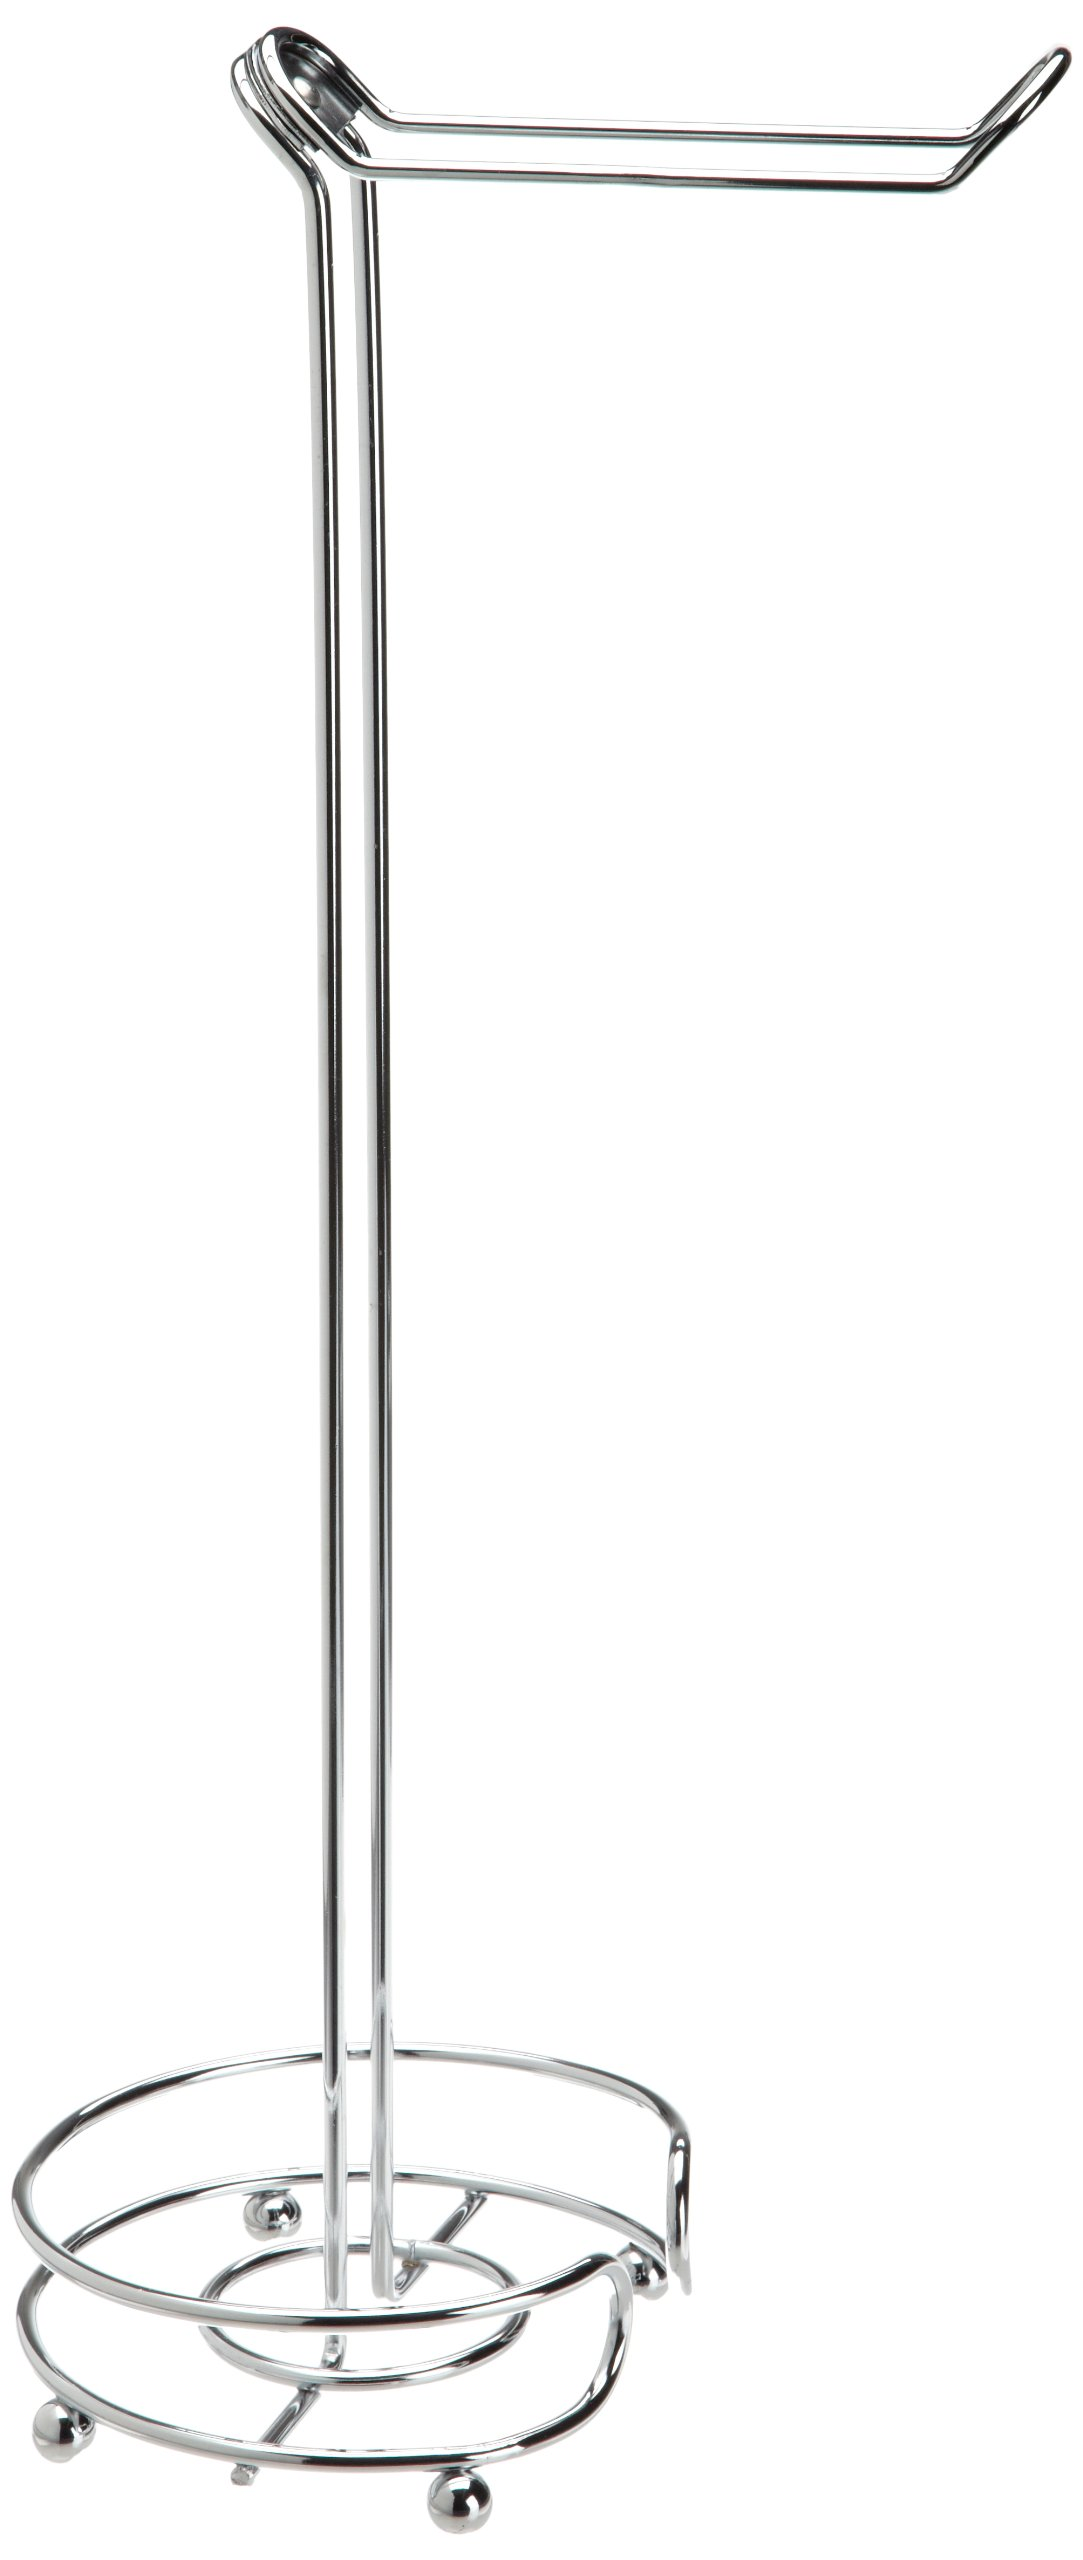 Taymor Flipper Freestanding Toilet Paper Holder, Chrome Finish